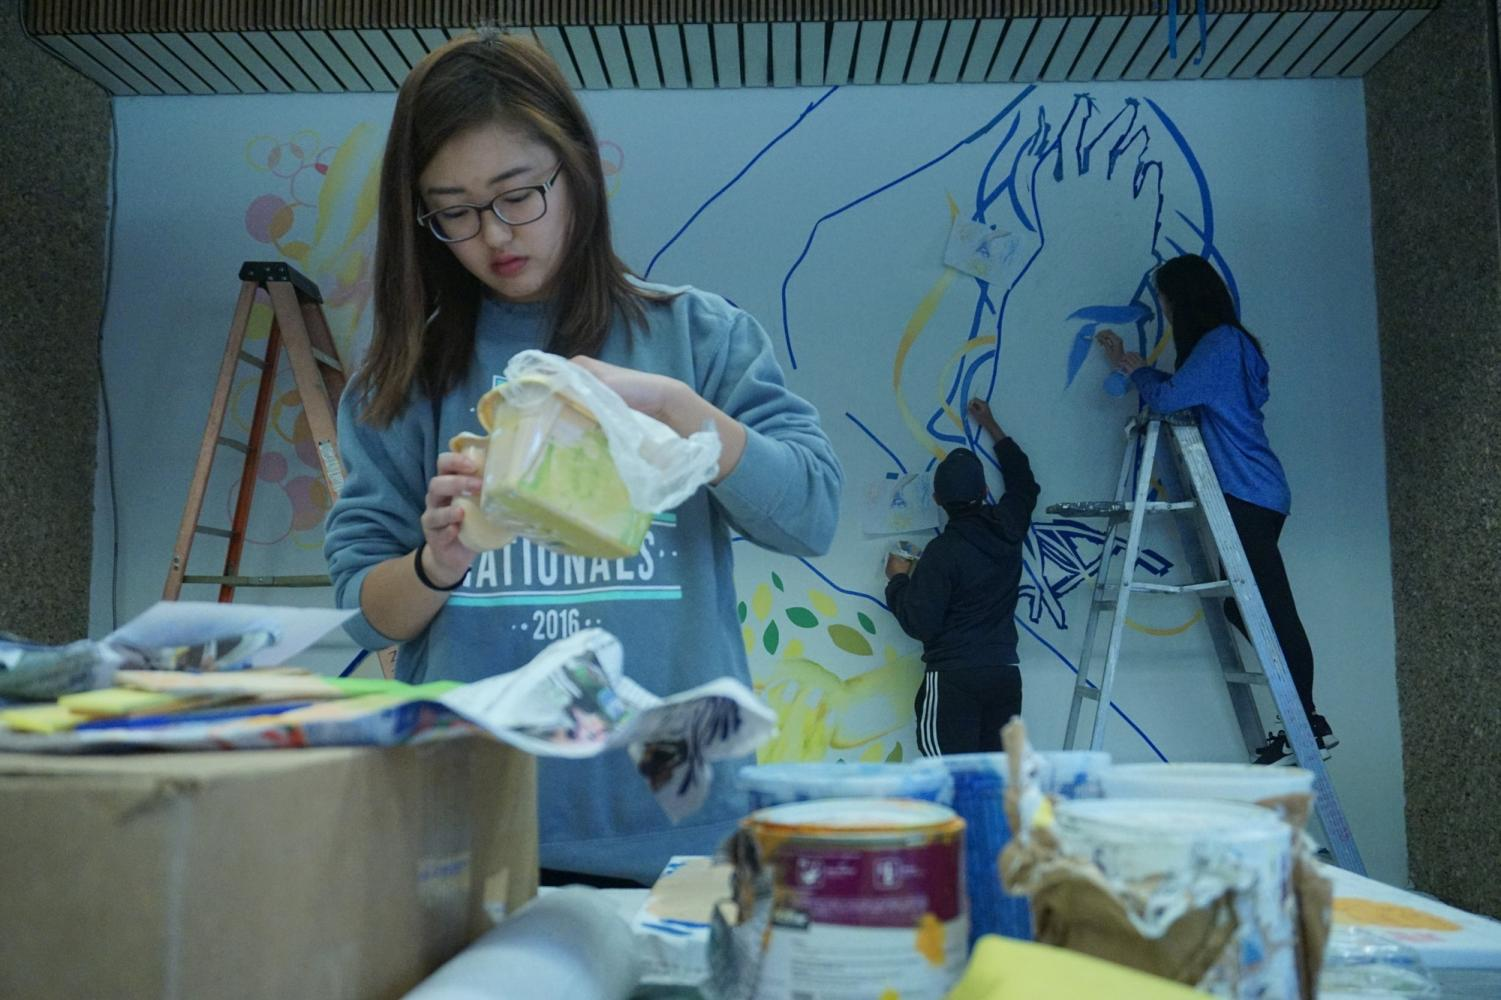 Haruka Kanemura ,19, studio art major, and her team painting a mural in the East Lounge of the Student Activities Center. Photo credit: Ryan Guitare